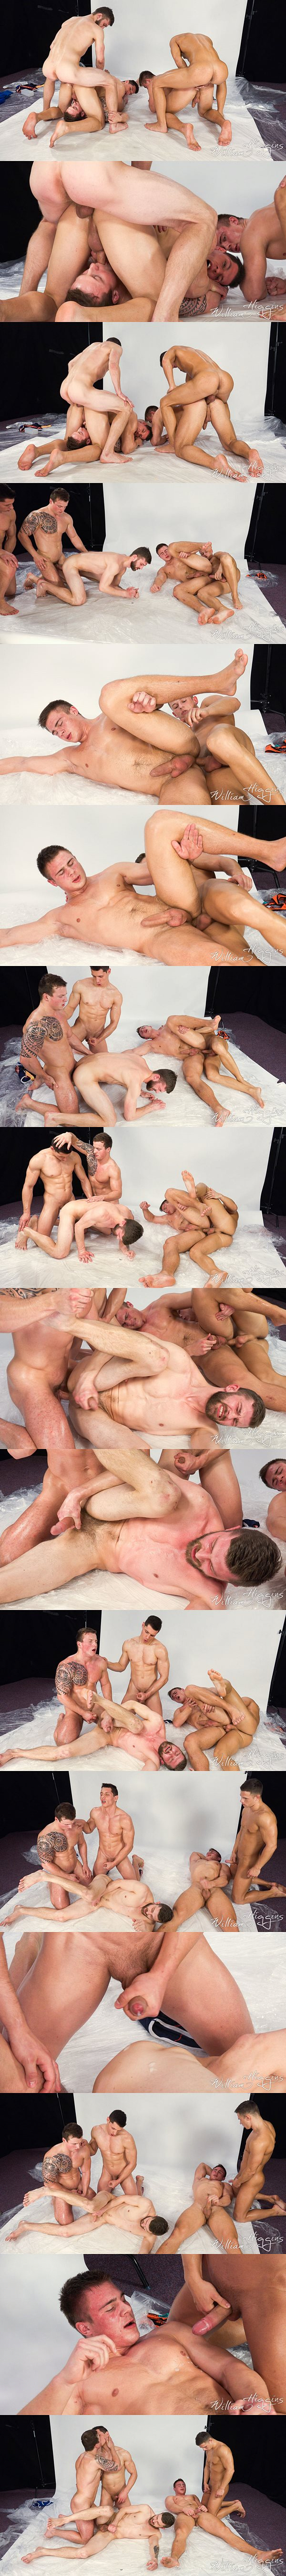 Filo Bruska and Martin Hovor bareback Nikol Monak, Peter Lipnik and Viktor Adam in Wank Party 81 Part 2 at Williamhiggins 02